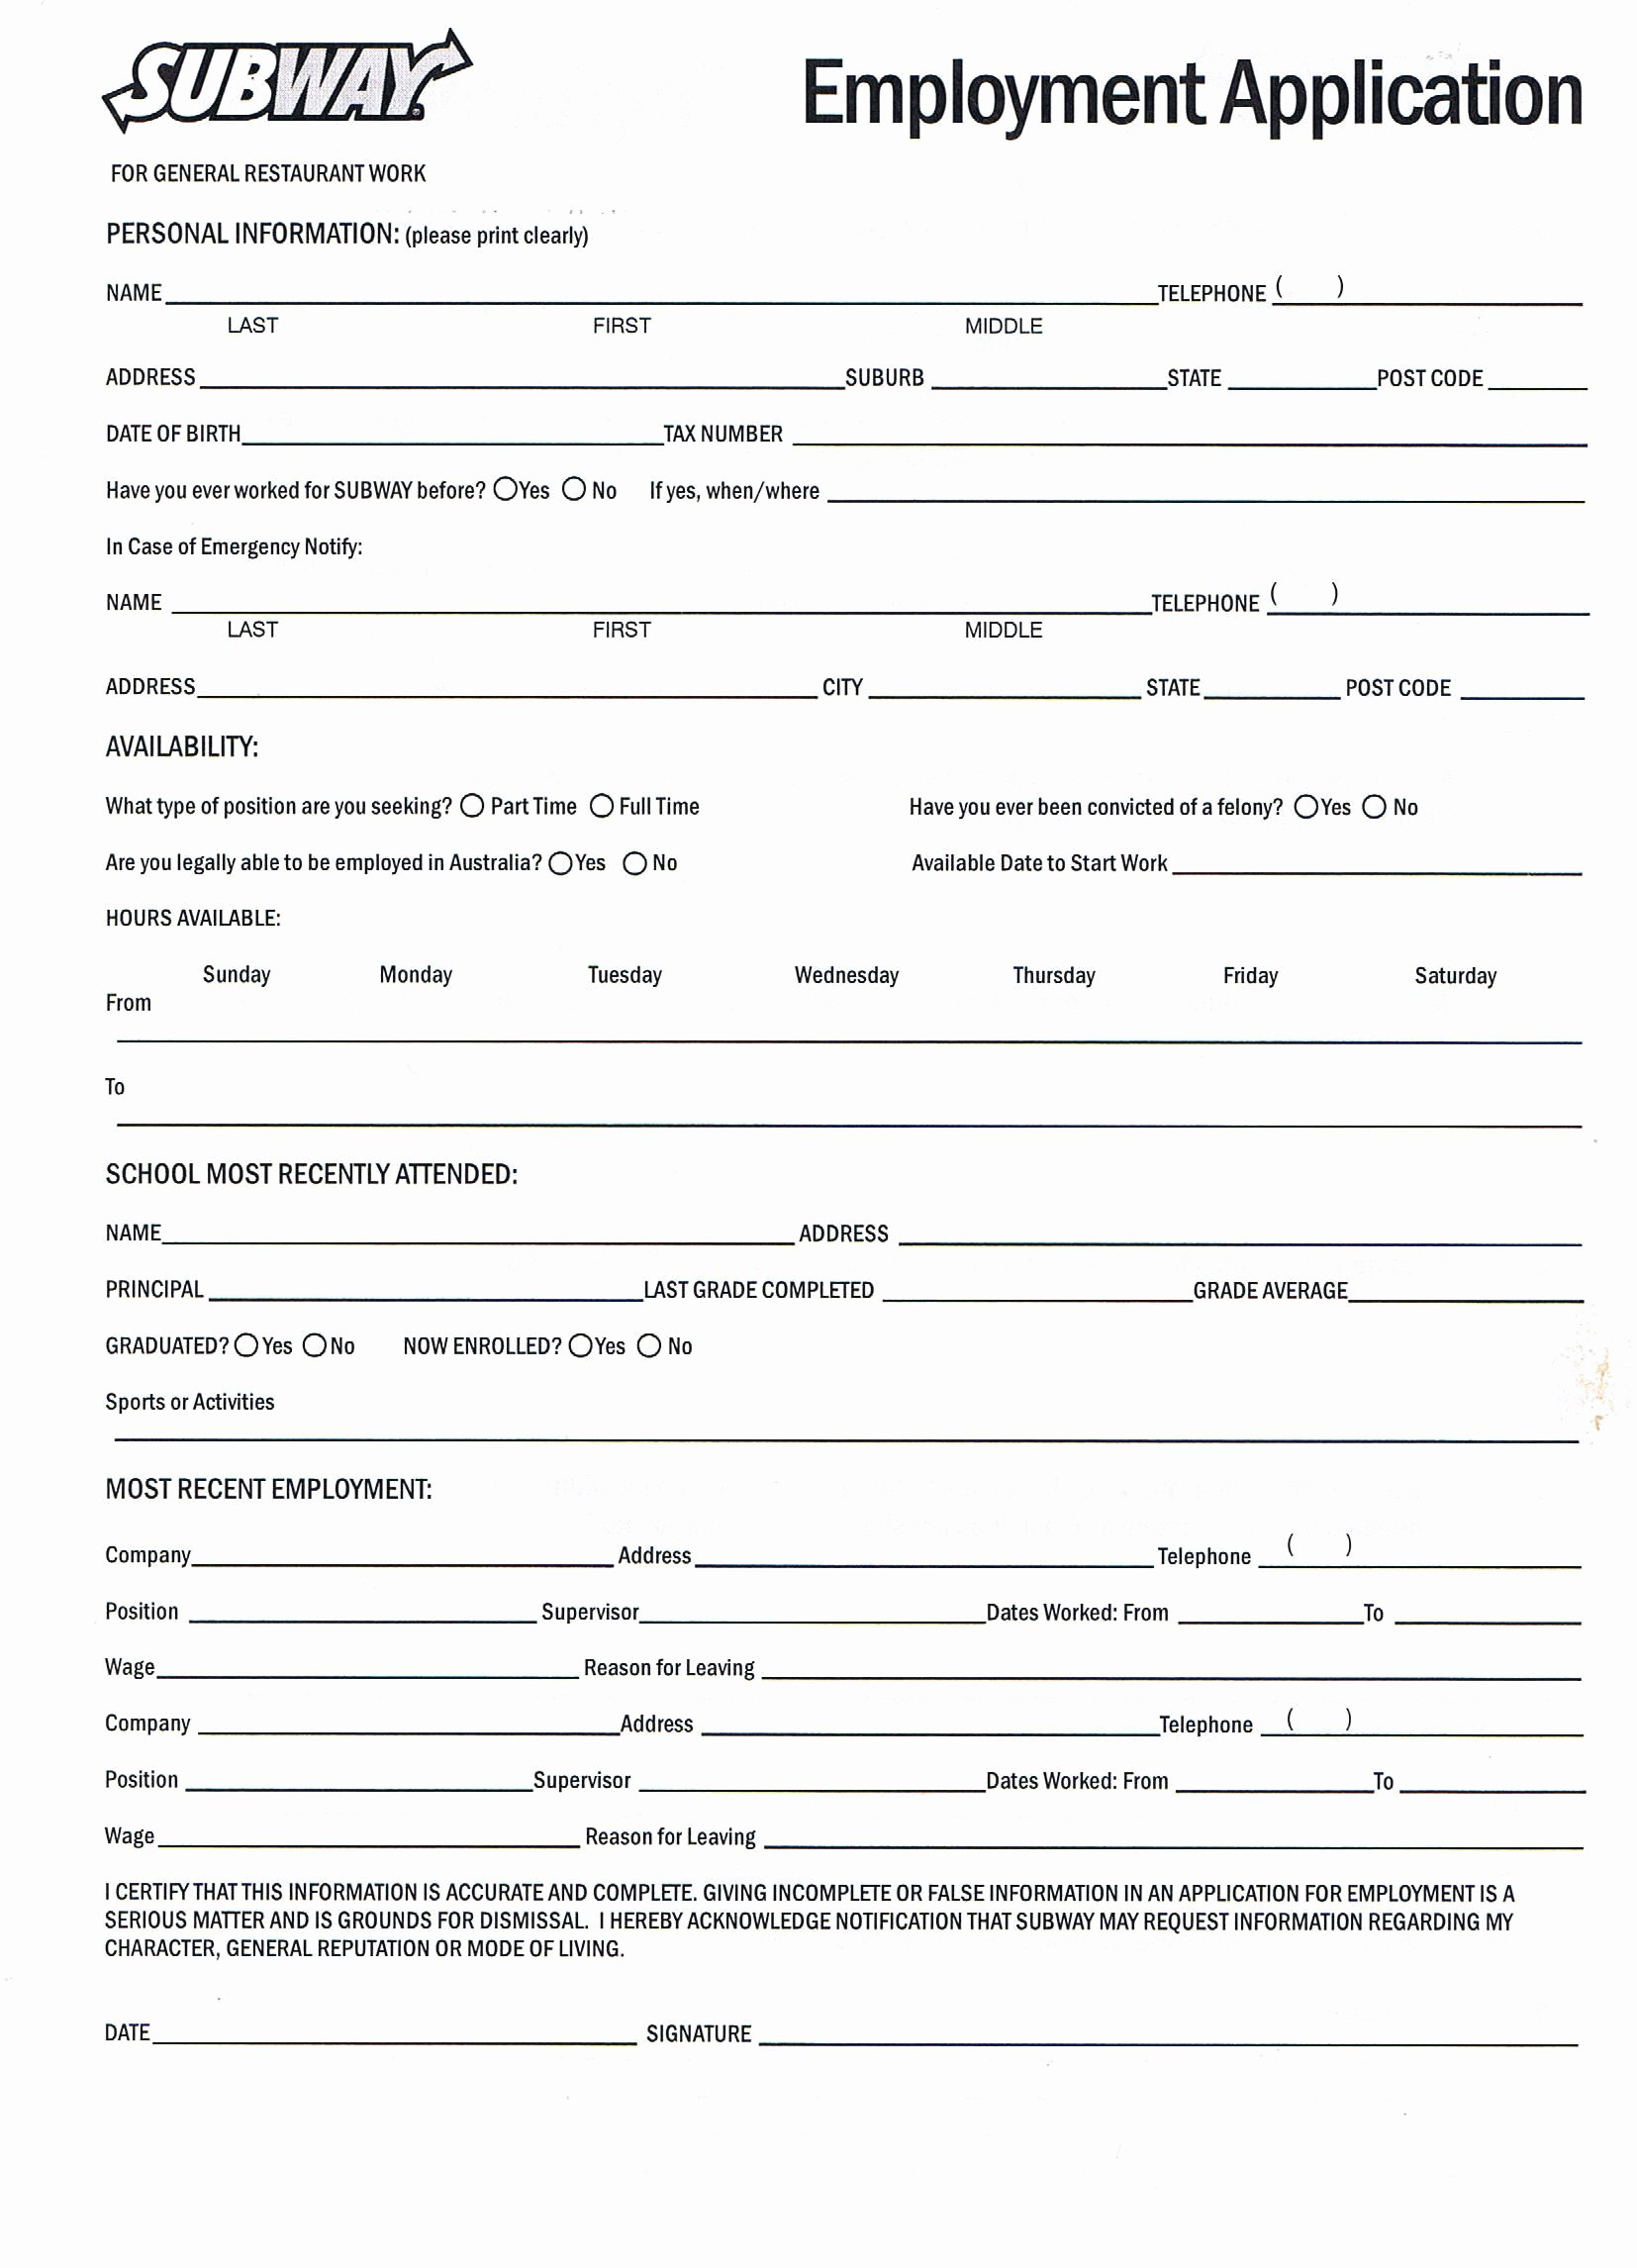 General Physical form for Employment Beautiful Printable Employment Application for Subway